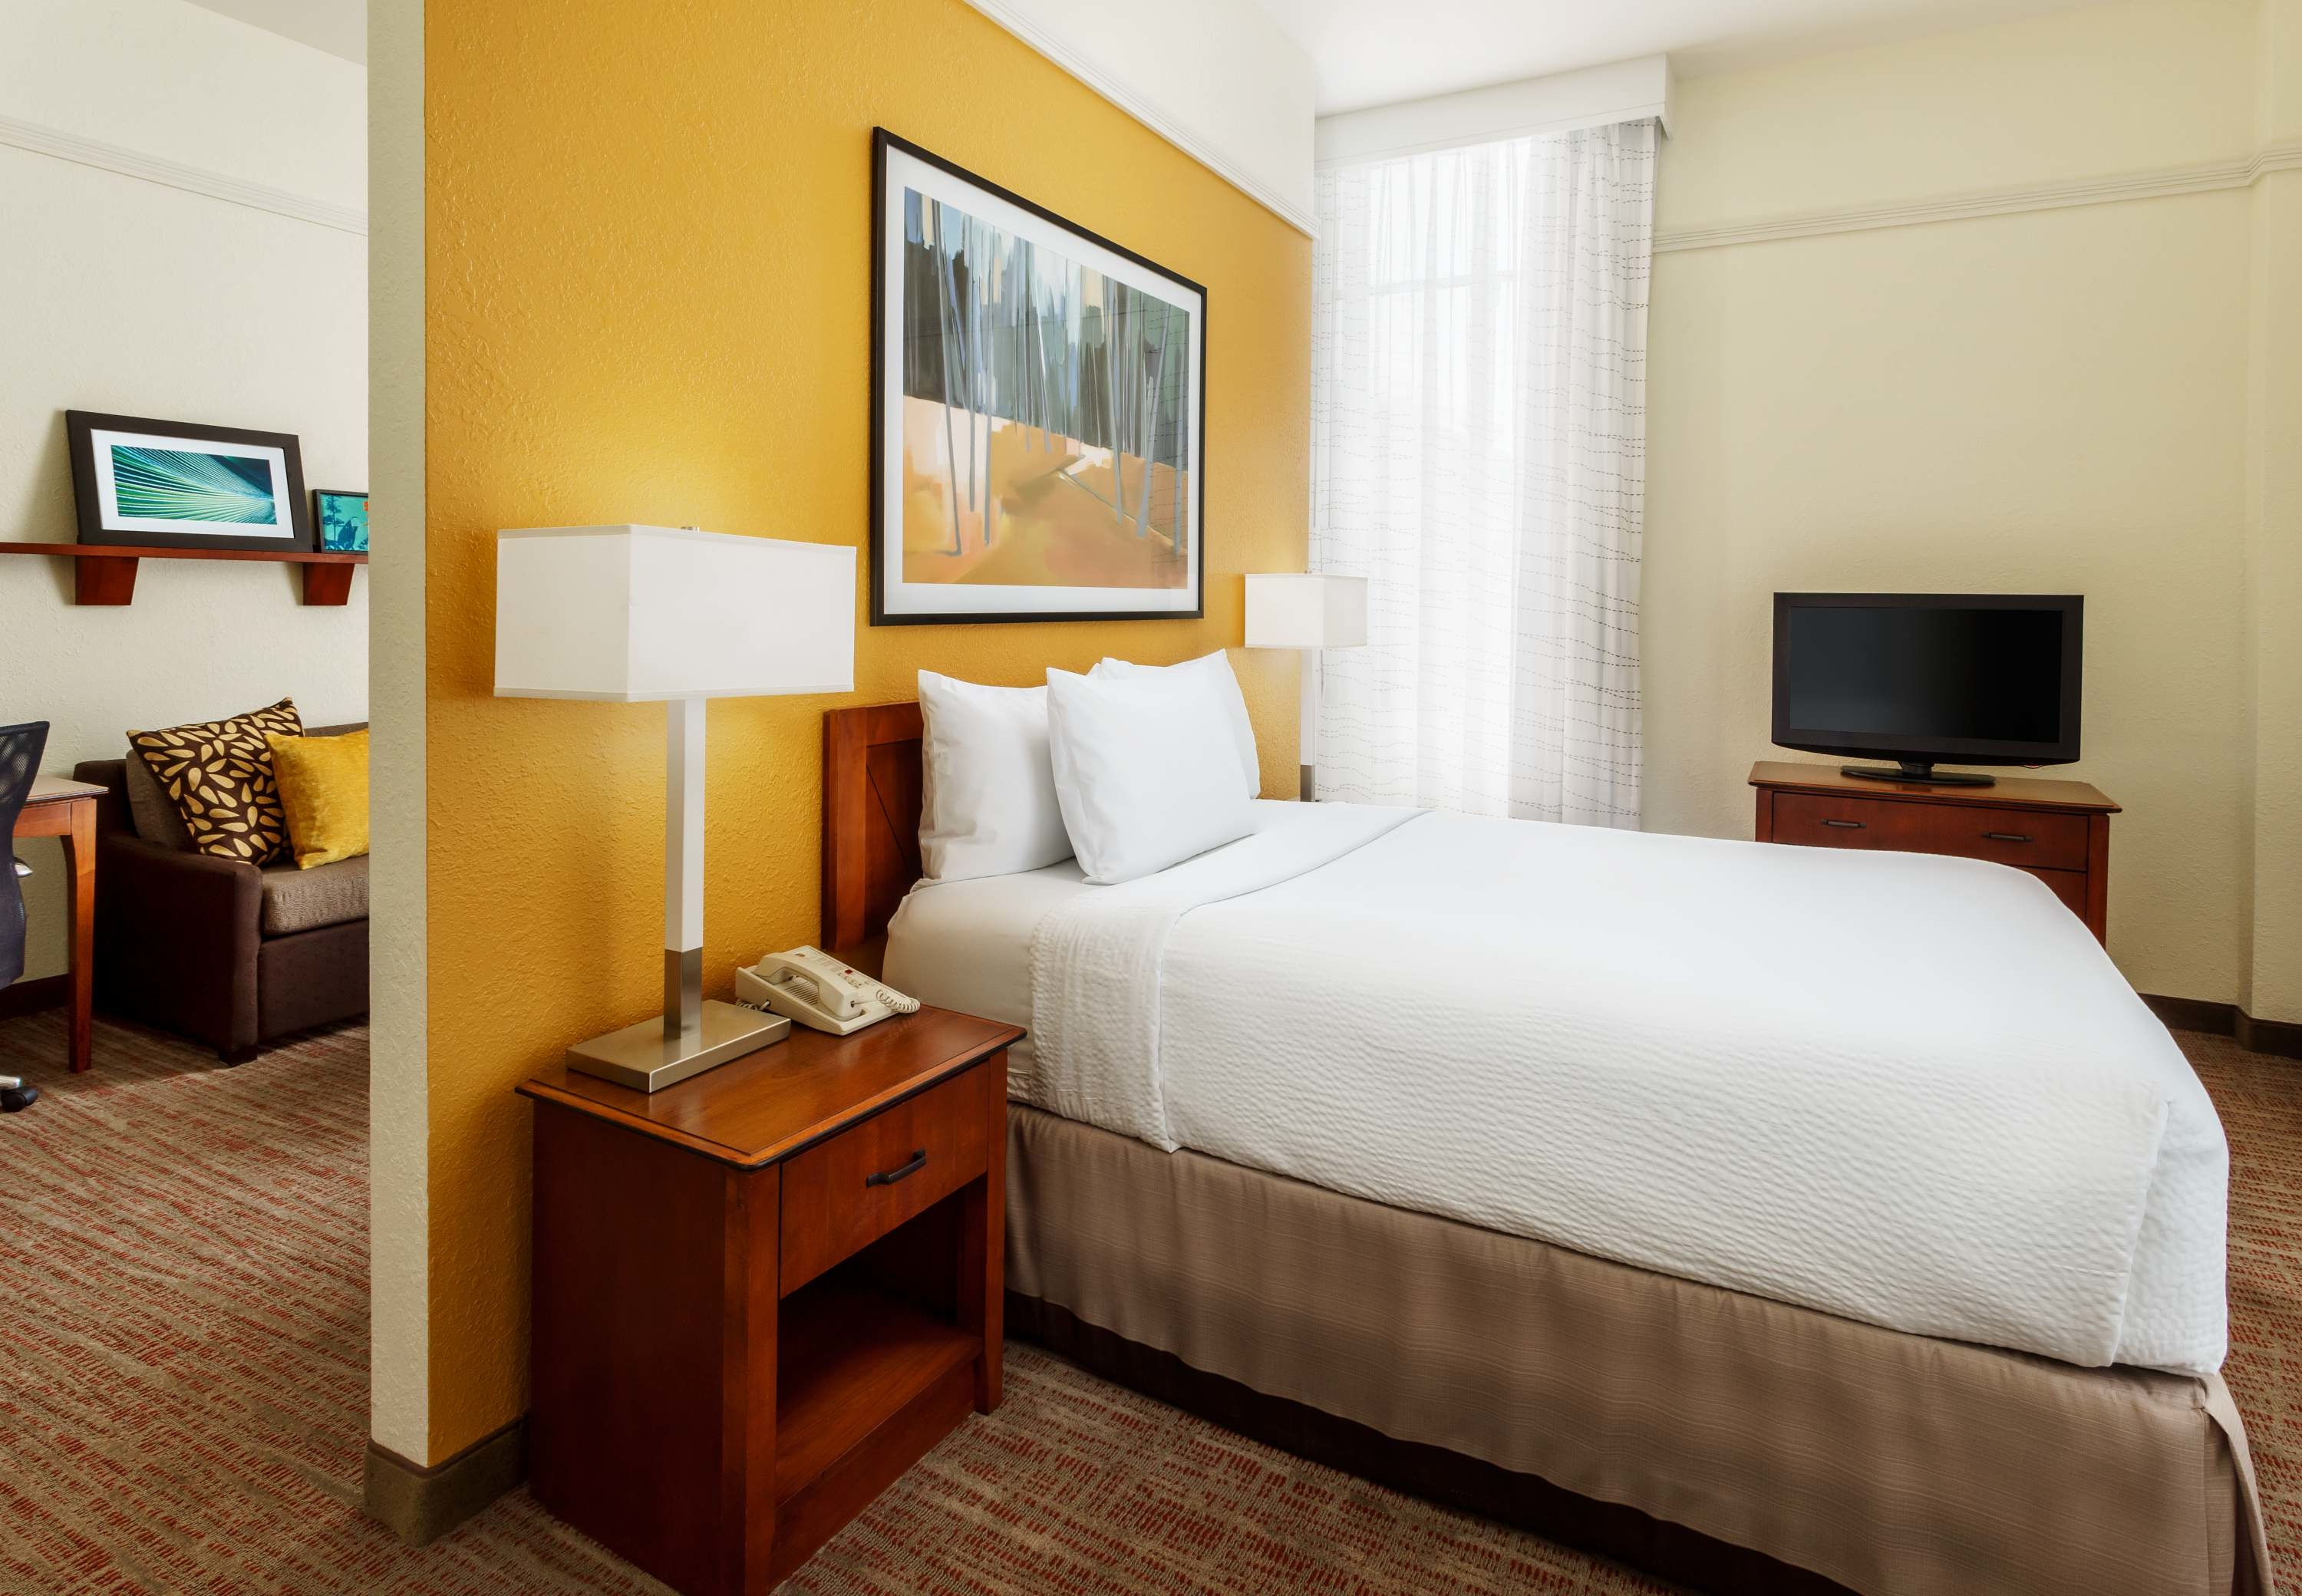 Residence Inn by Marriott Houston Downtown/Convention Center image 5